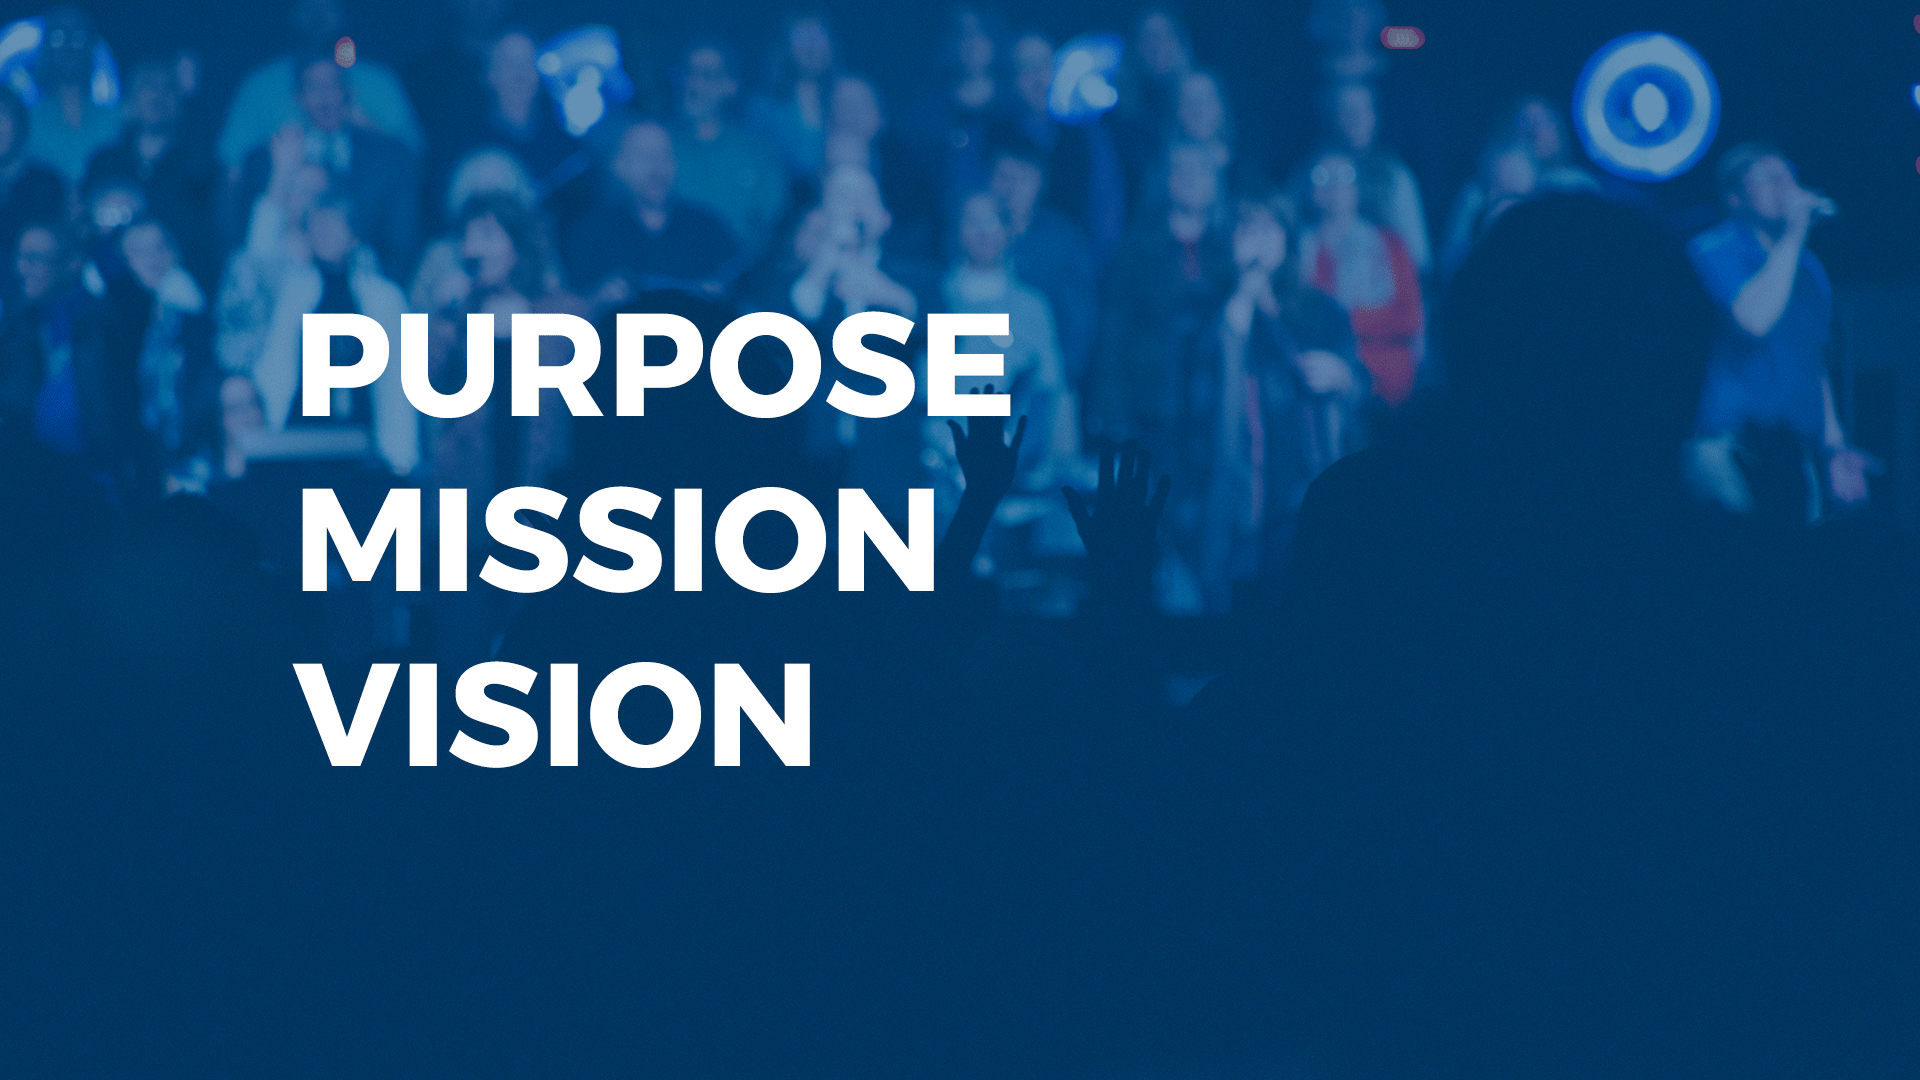 Purpose, Mission, Vision Sermon